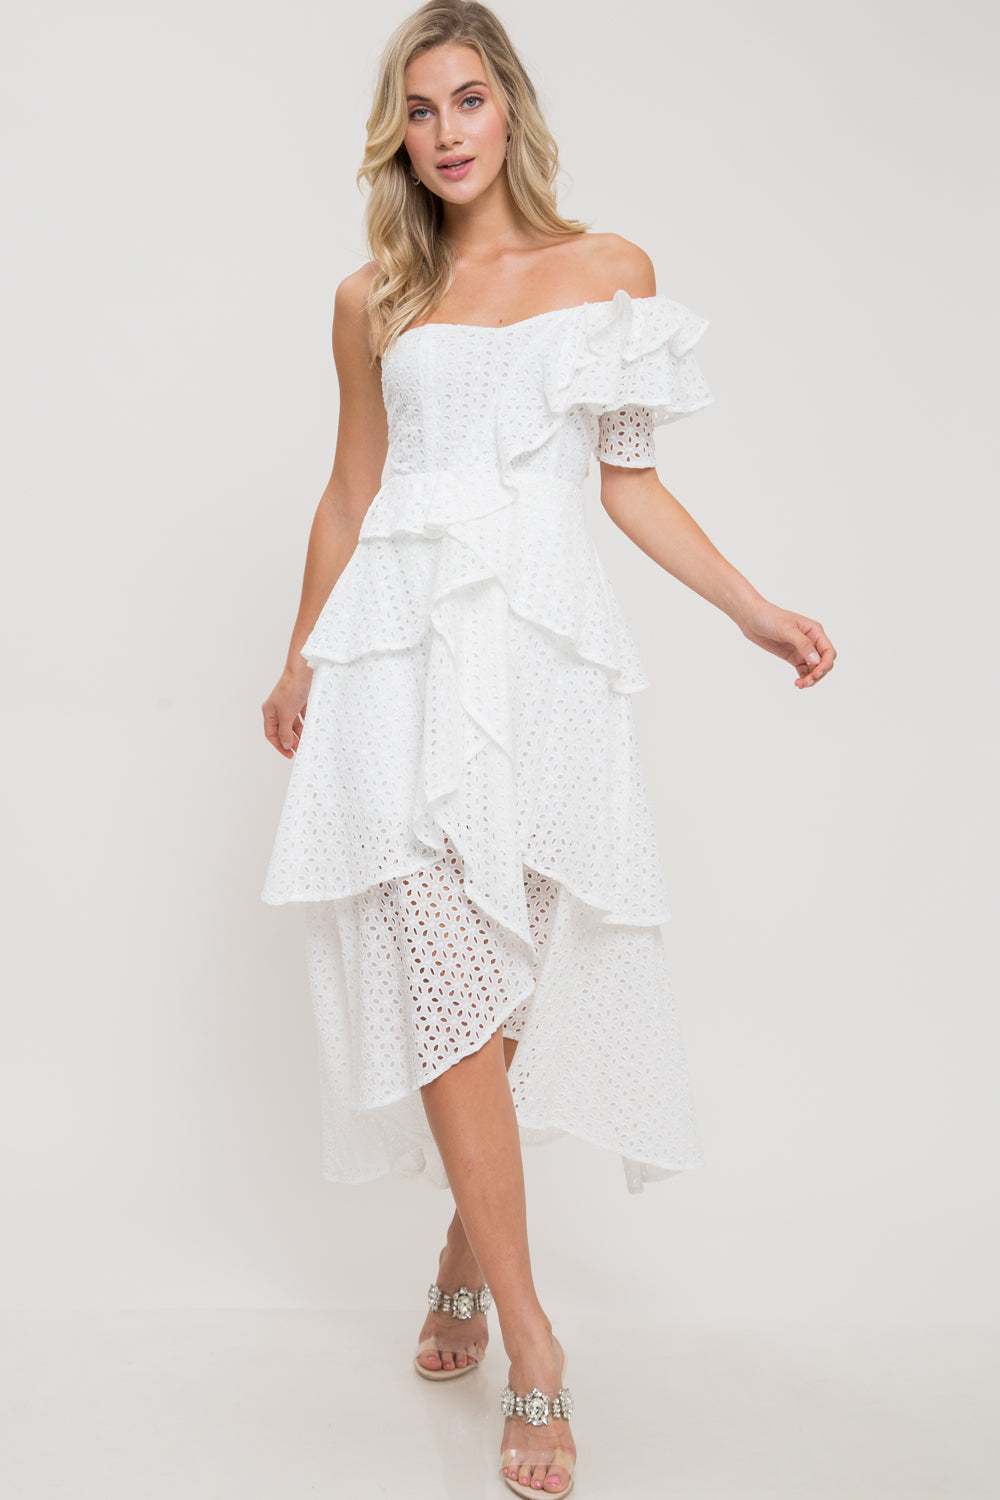 Purity Perforated One Shoulder Ruffle Dress